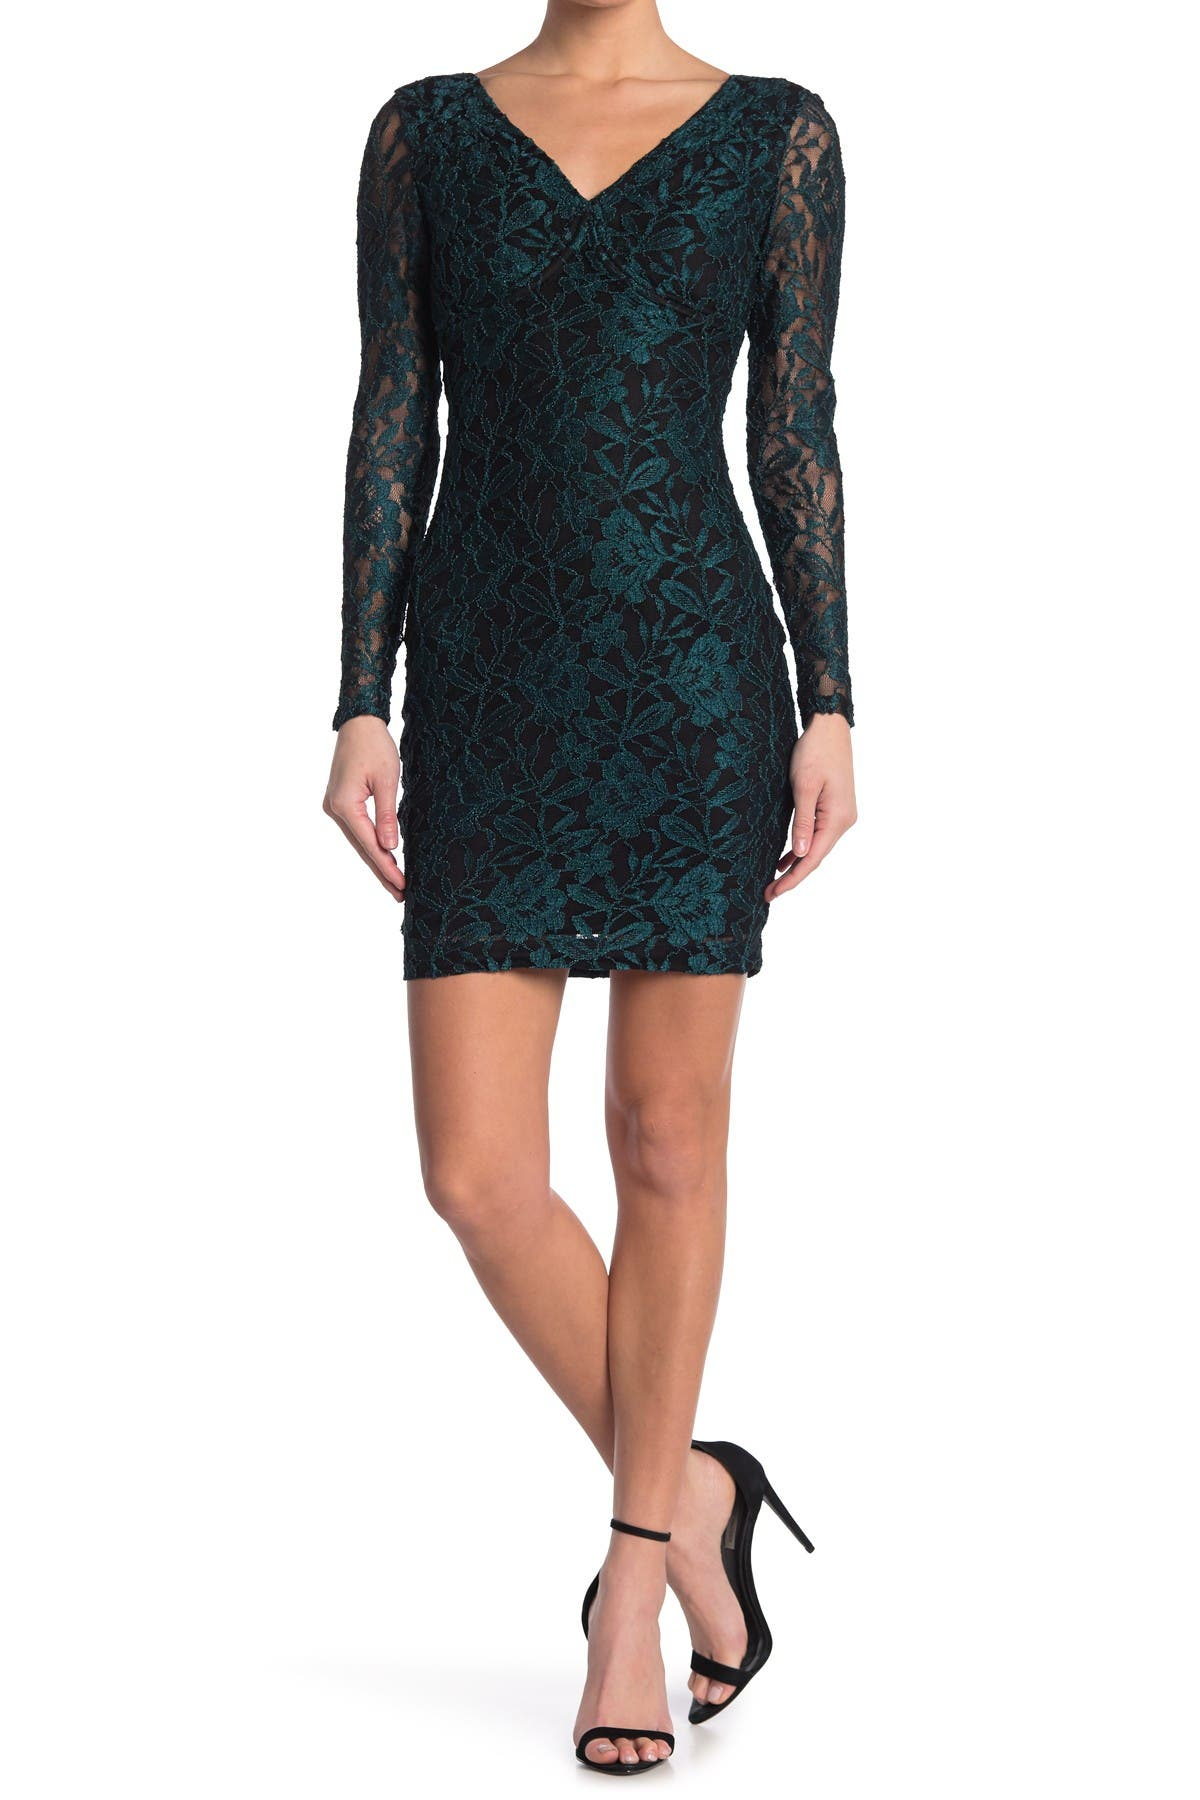 Image of GUESS Contrast Lace Mini Dress